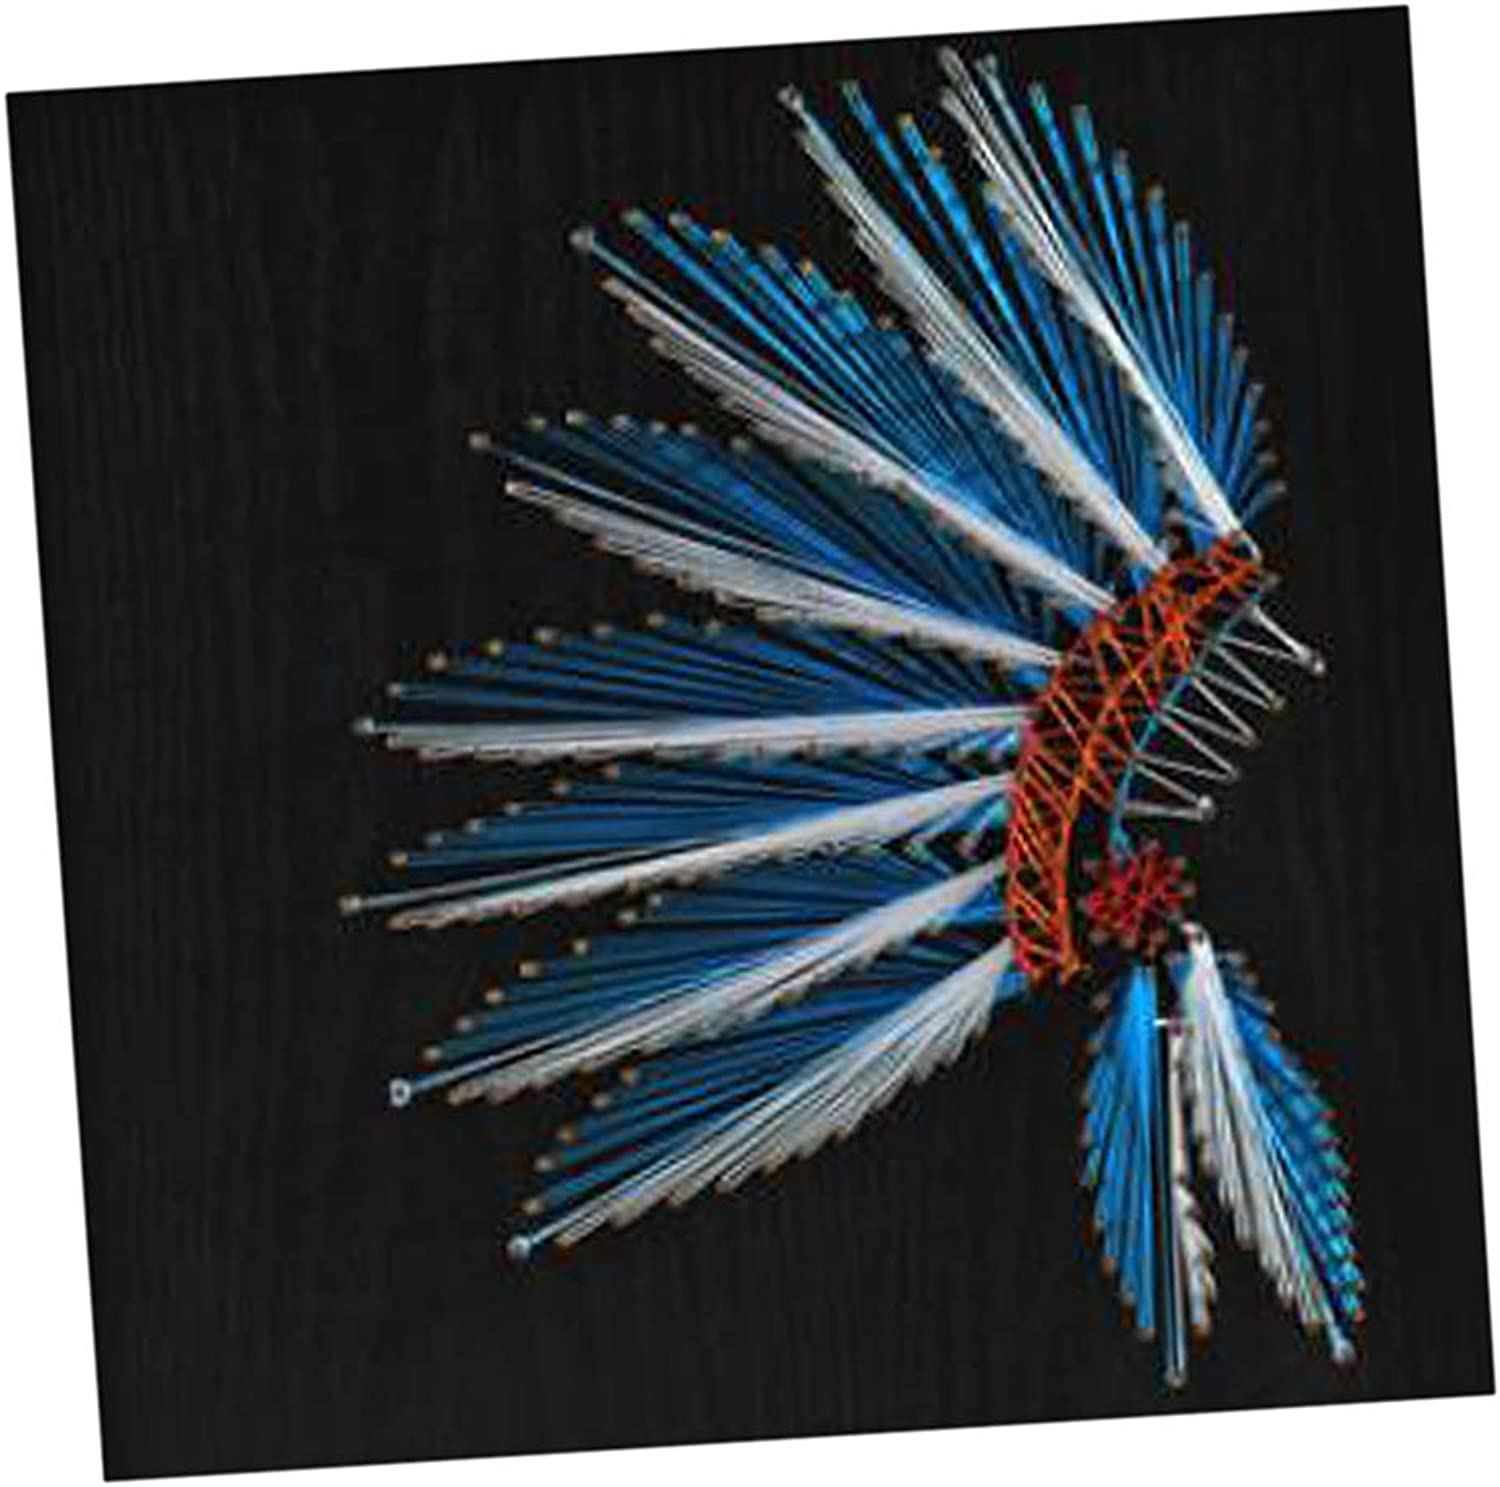 Baosity Feather Shape Crafts String Art Kits for Beginners Handmade Painting Home Decor 40 X 40cm